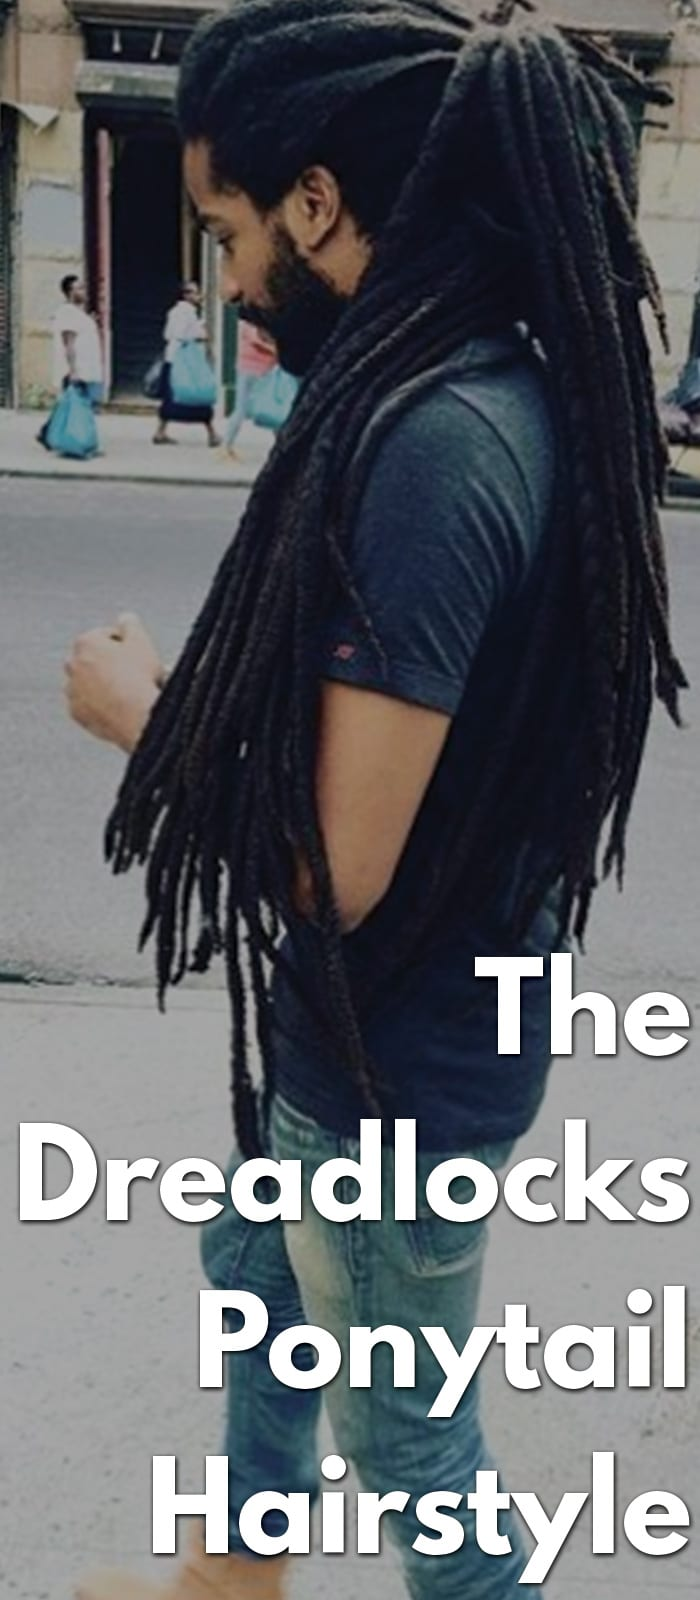 The Dreadlocks Ponytail Hairstyle